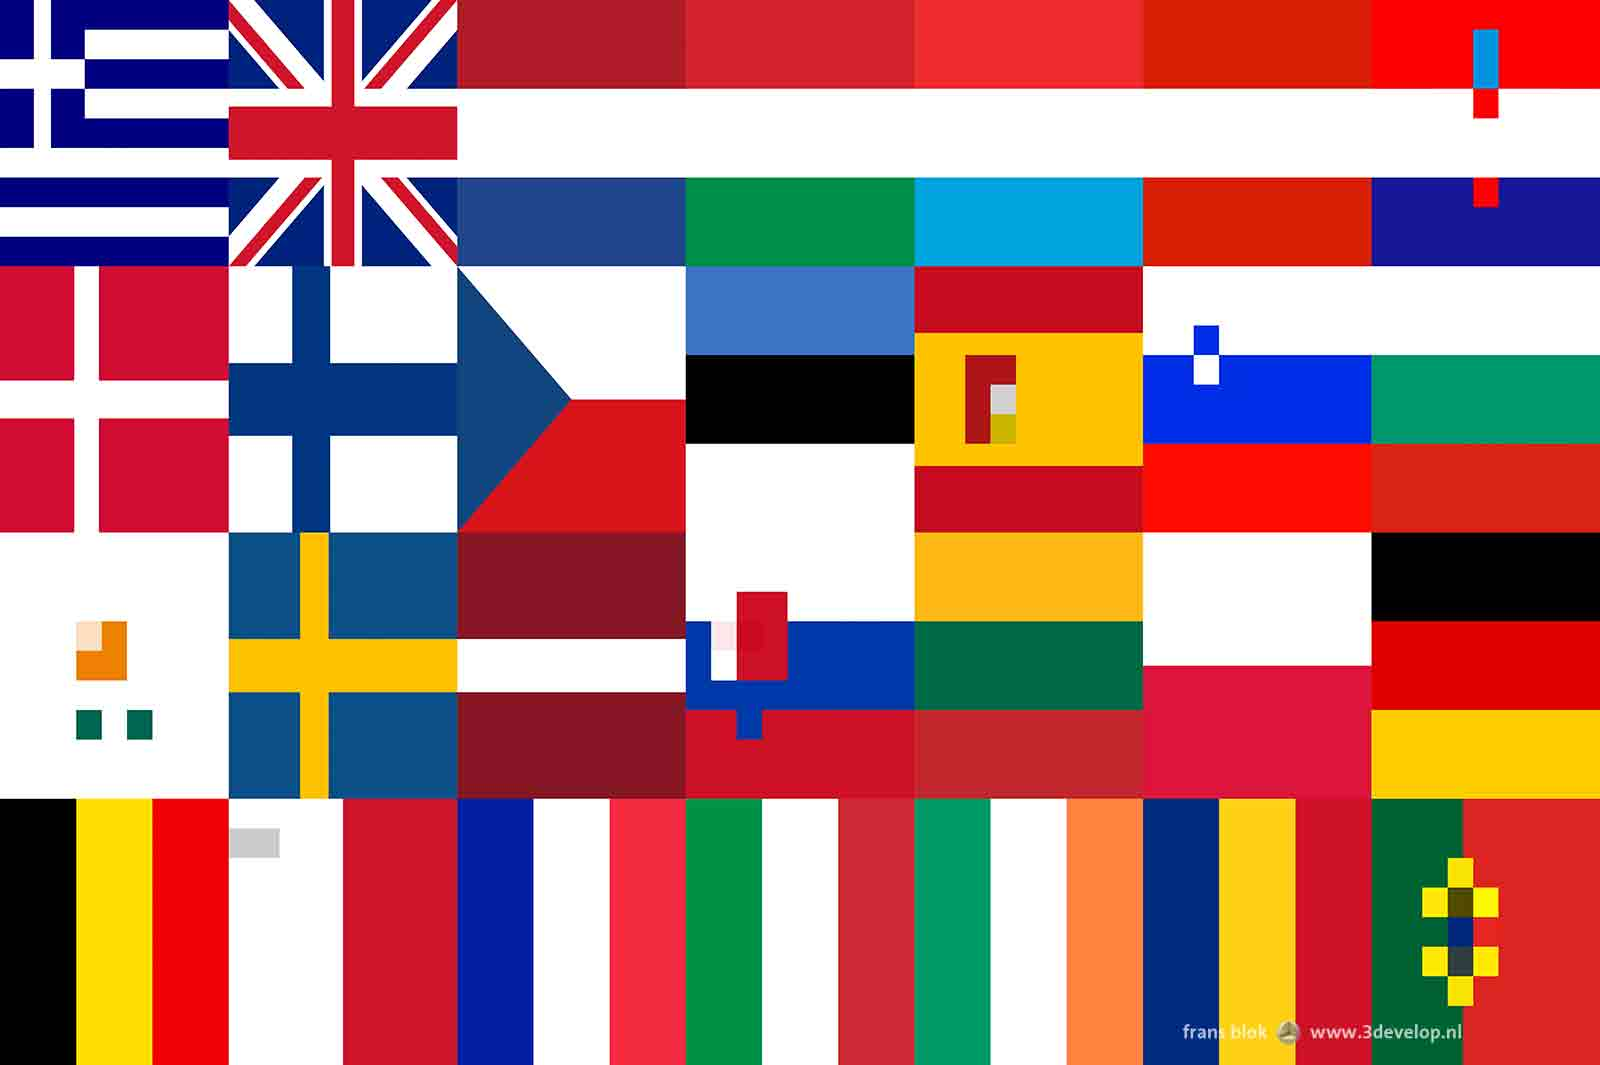 flags-of-the-european-union-simplified